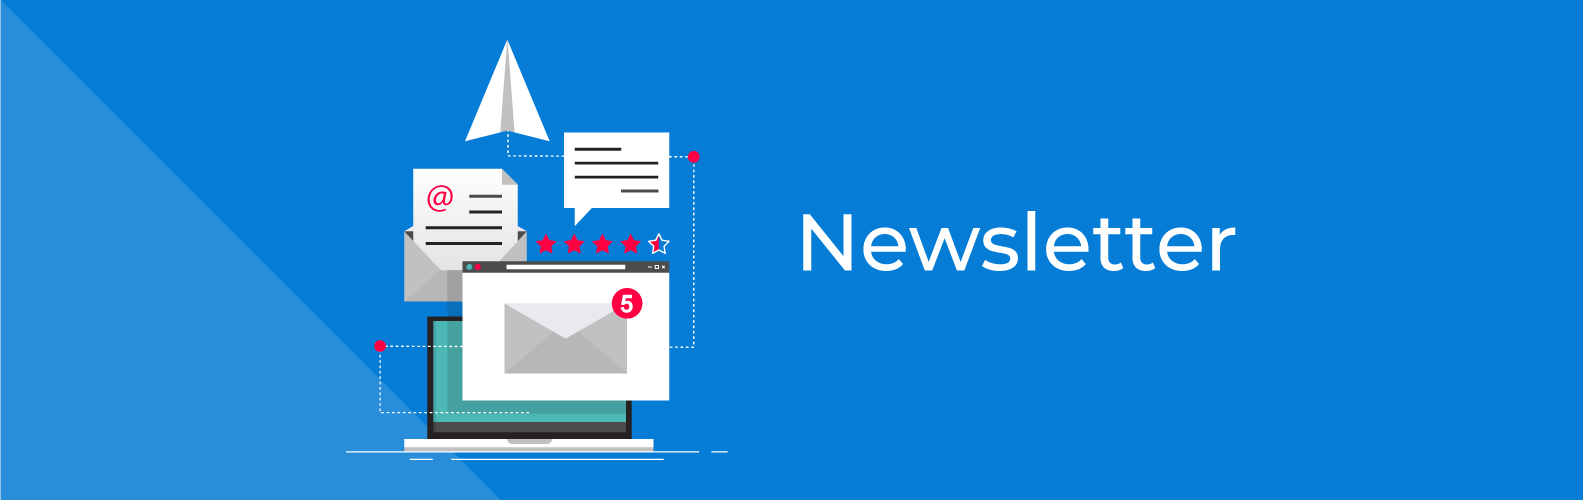 Expand Newsletter